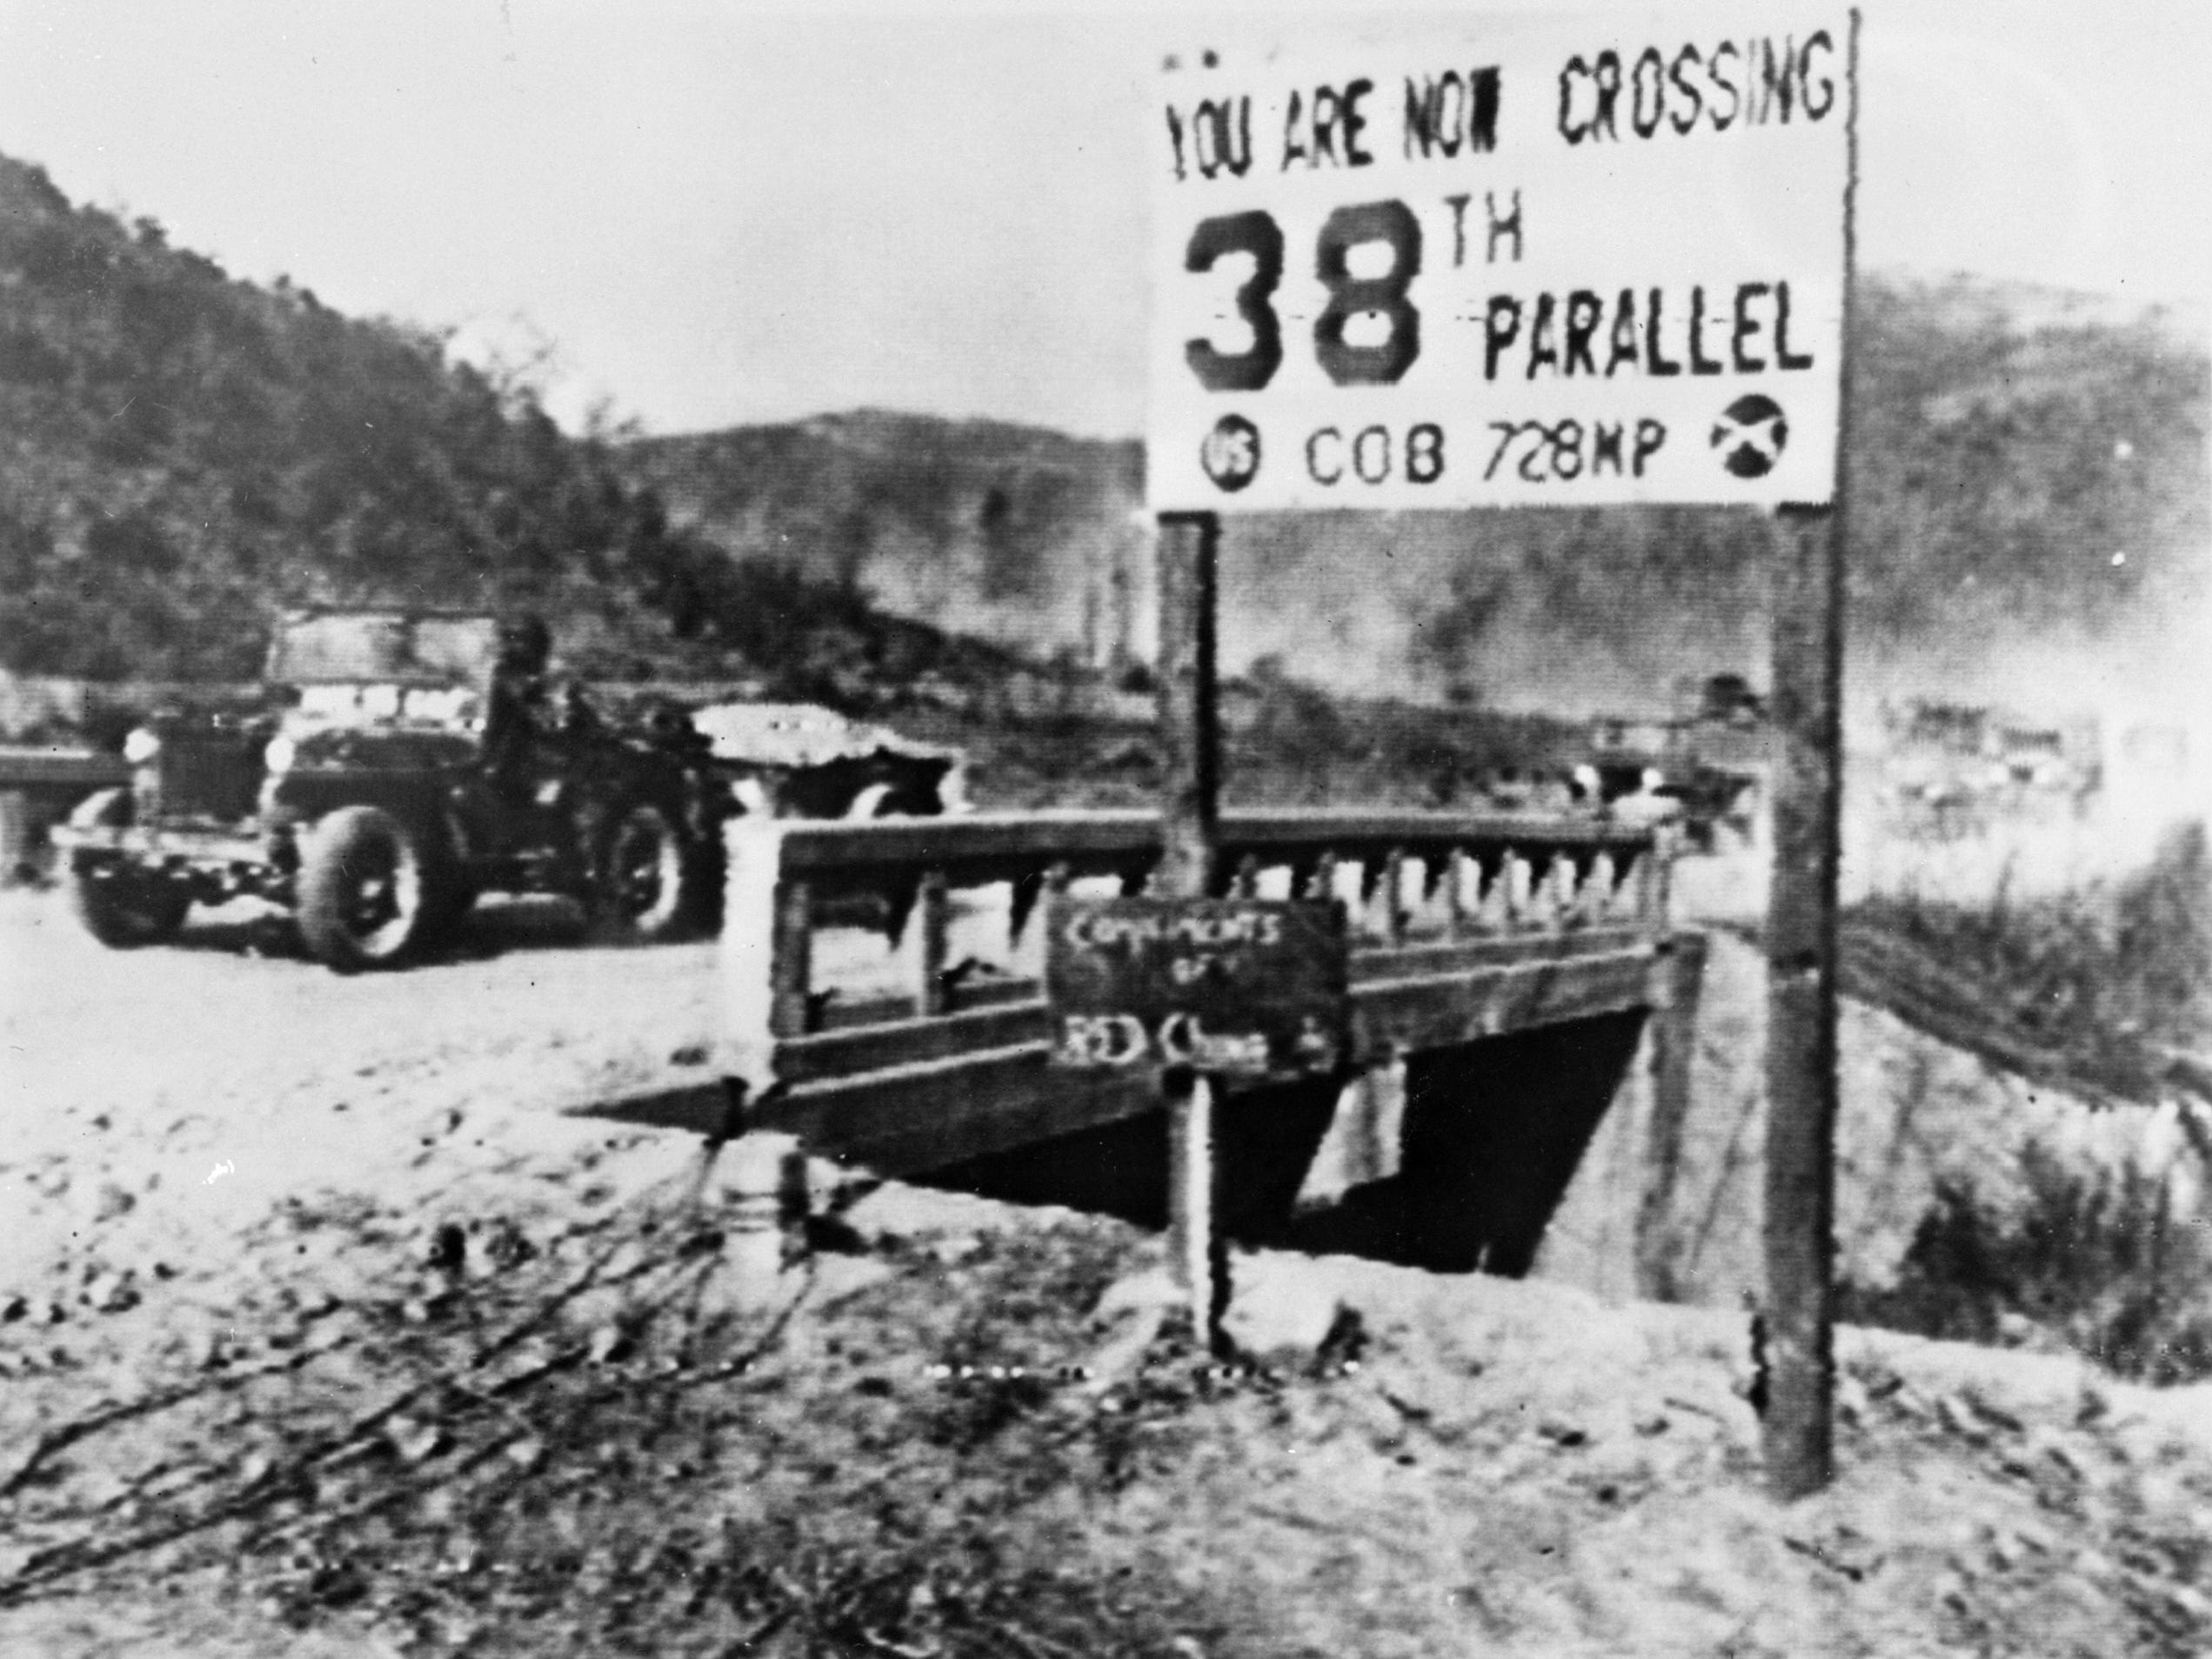 A jeep heading south crossing the 38th parallel separating North and South Korea in December 1950.